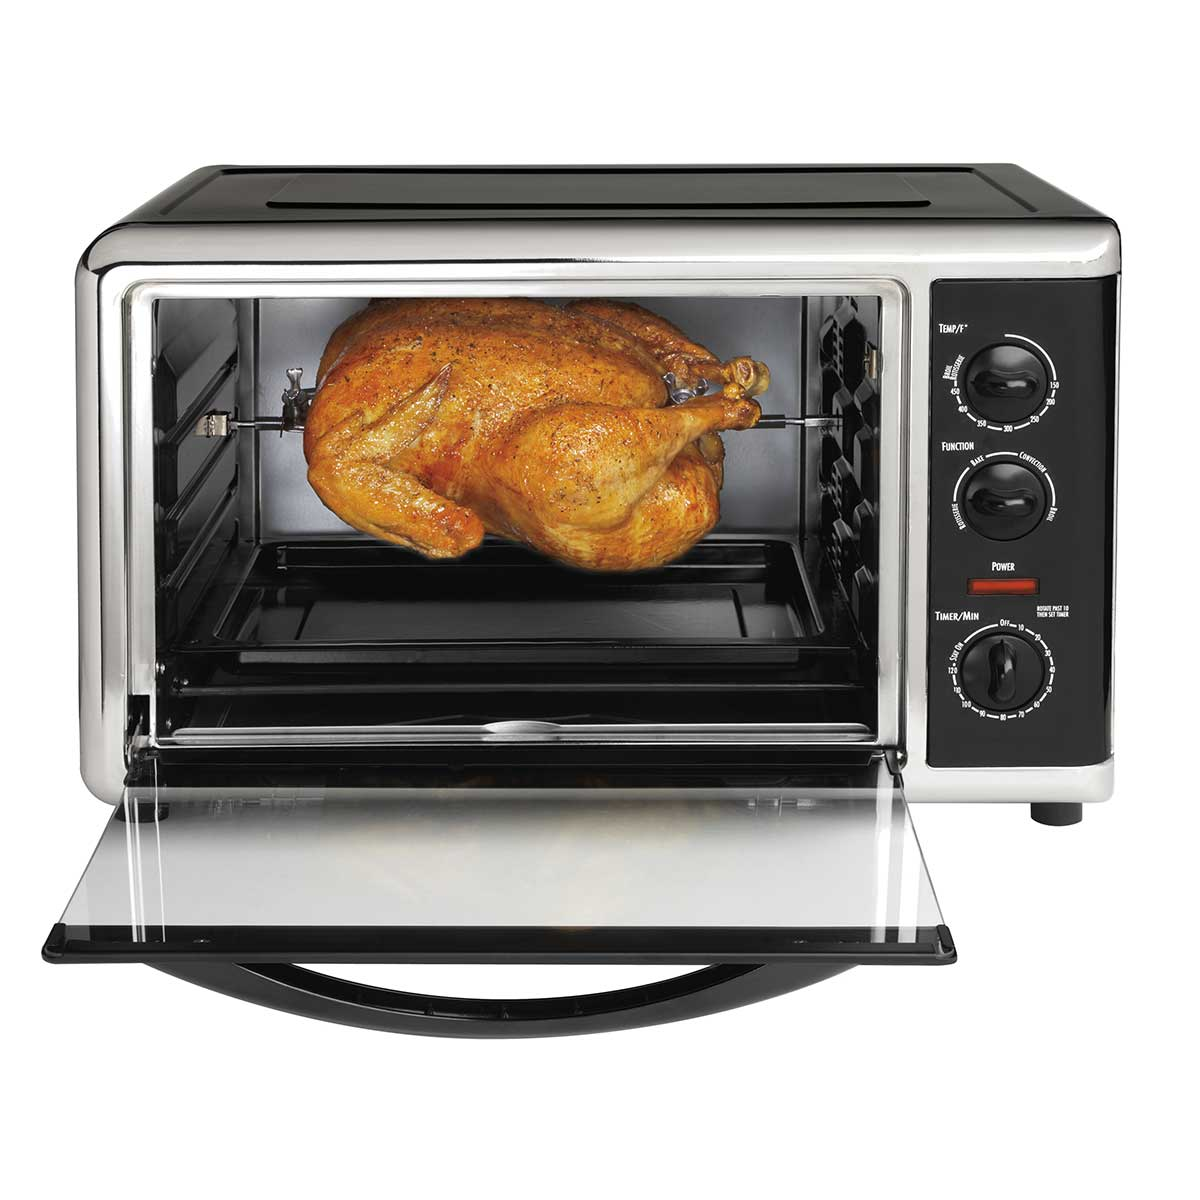 Countertop Oven with Convection and Rotisserie (31100)